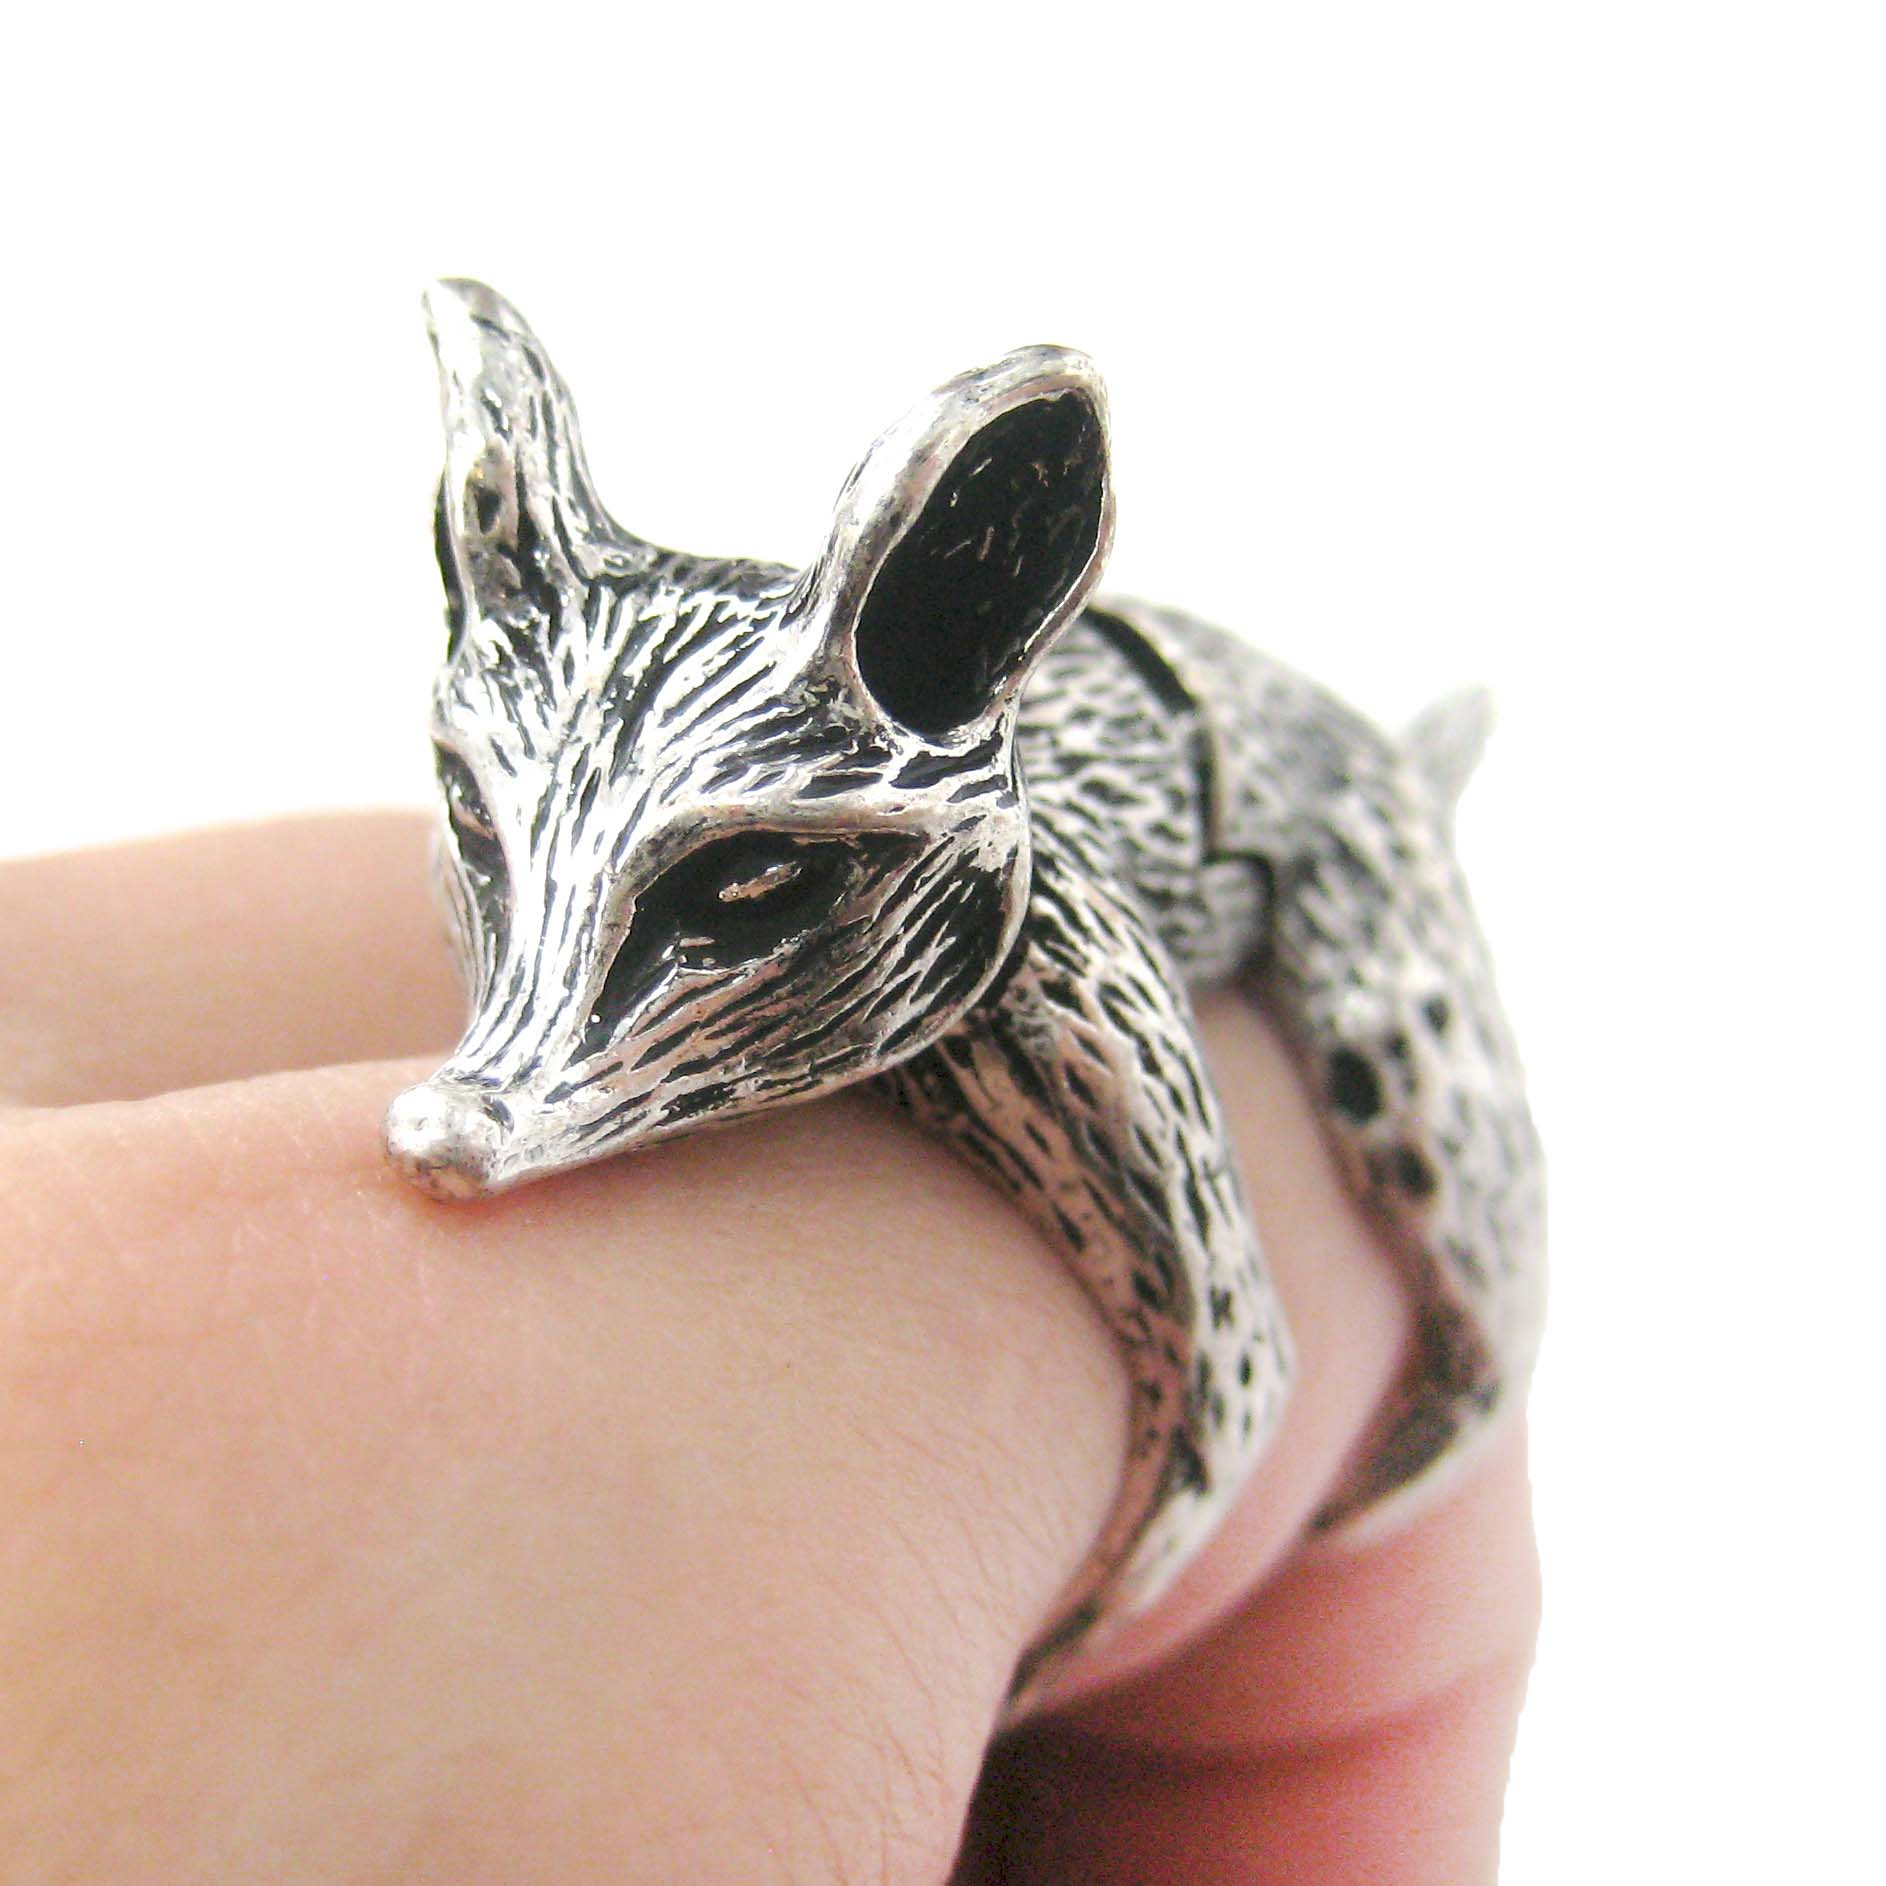 Detailed fox shaped animal armor joint knuckle ring in silver detailed fox shaped animal armor joint knuckle ring in silver sizes 5 to 9 nvjuhfo Image collections